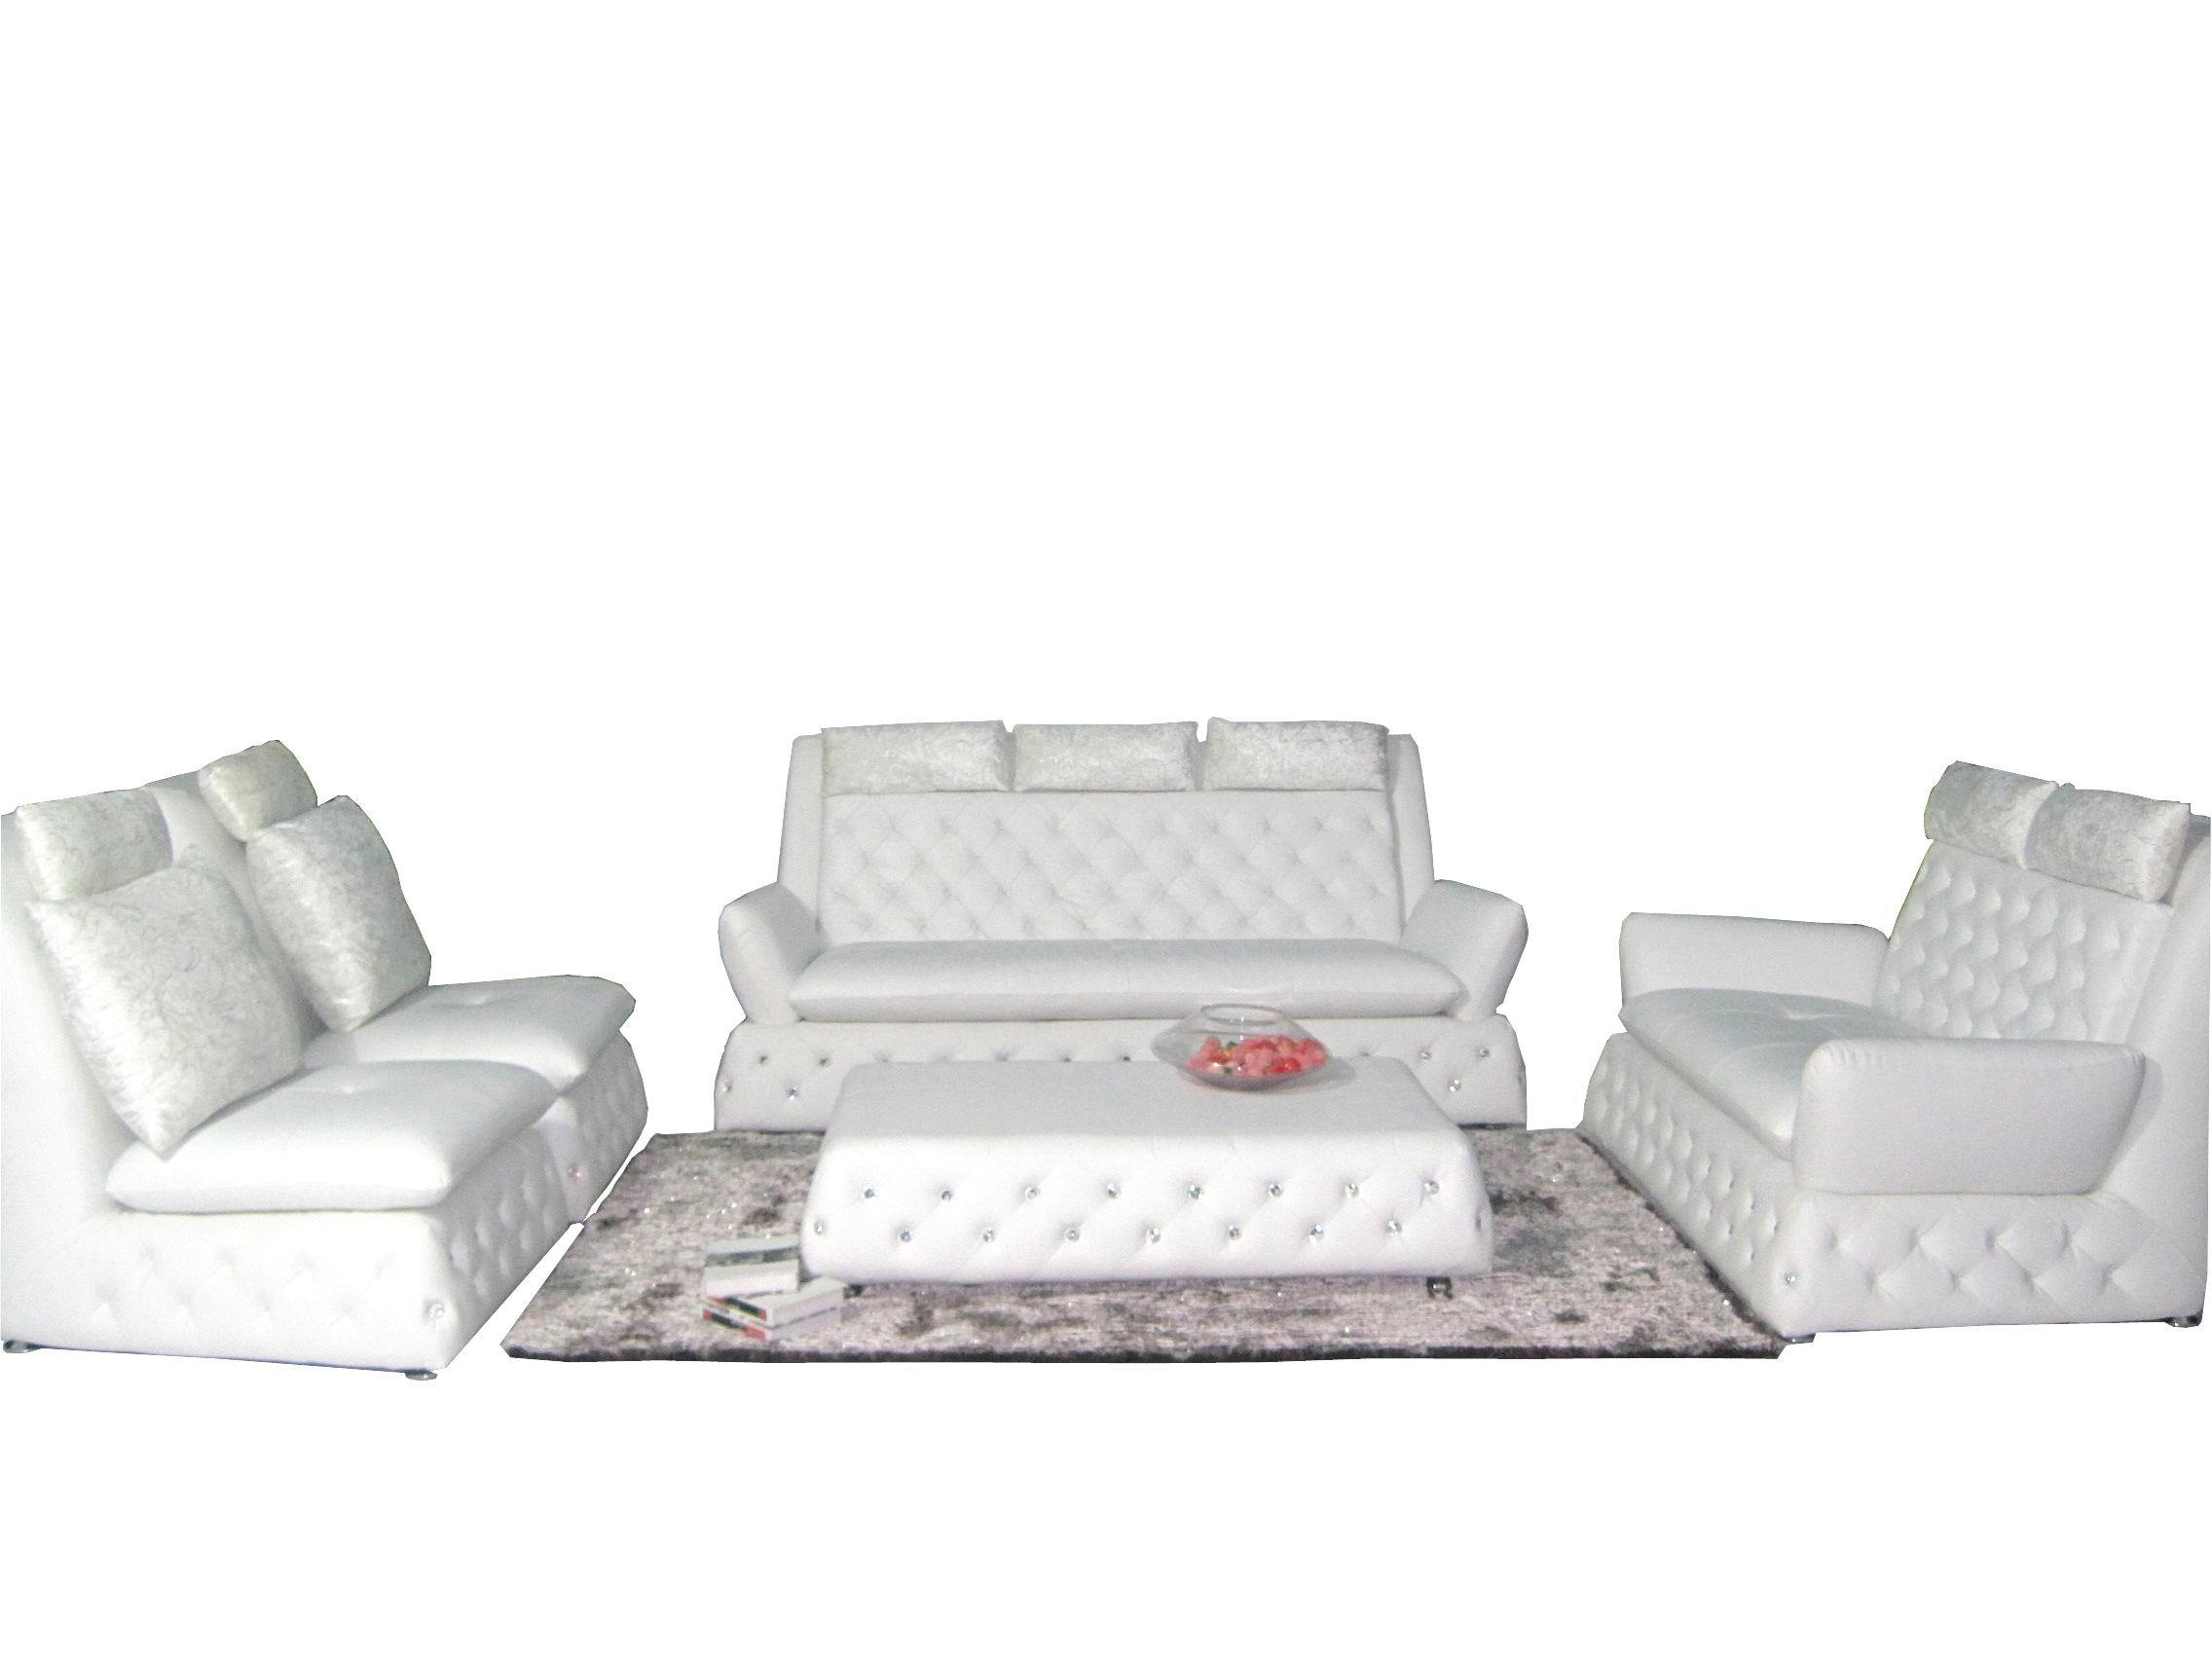 Sofa Sets | Leather Sofa Sets | Living Room Sofa Sets